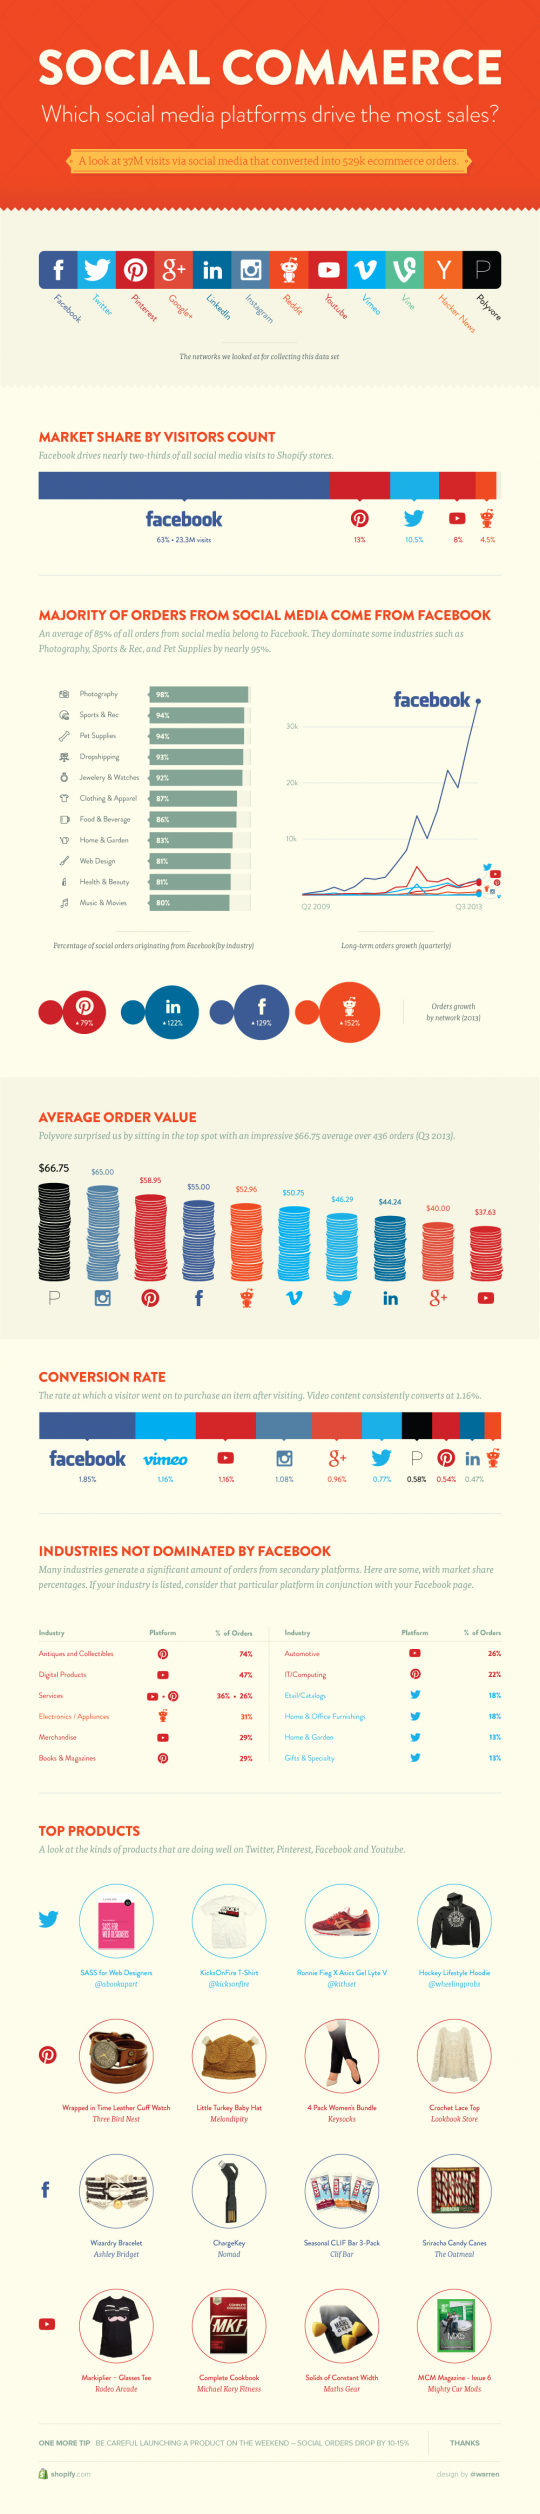 Which Social Media Platforms Drive the Most Sales?